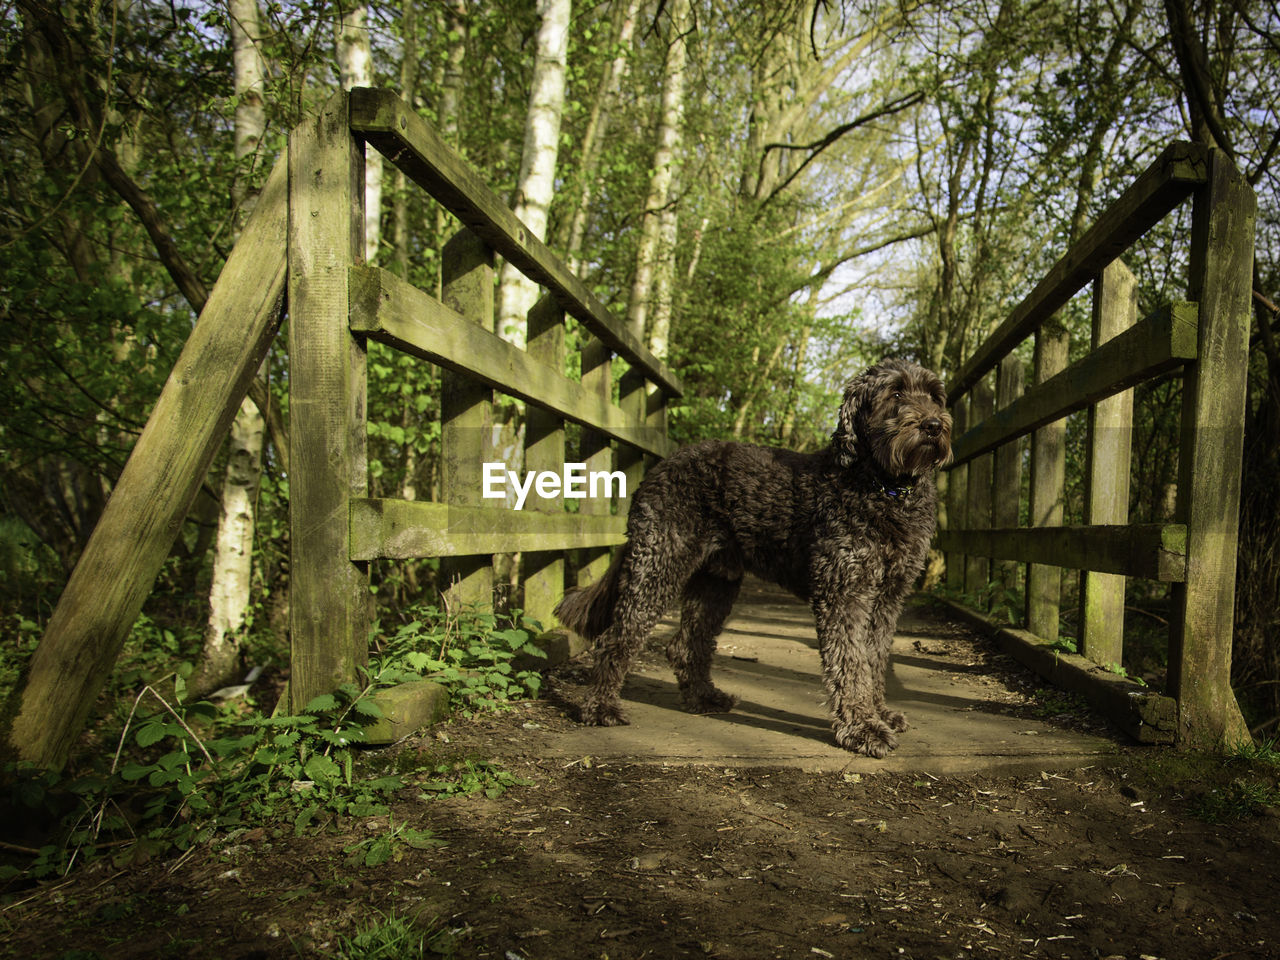 tree, one animal, mammal, forest, plant, land, canine, dog, nature, day, pets, domestic, woodland, domestic animals, full length, outdoors, people